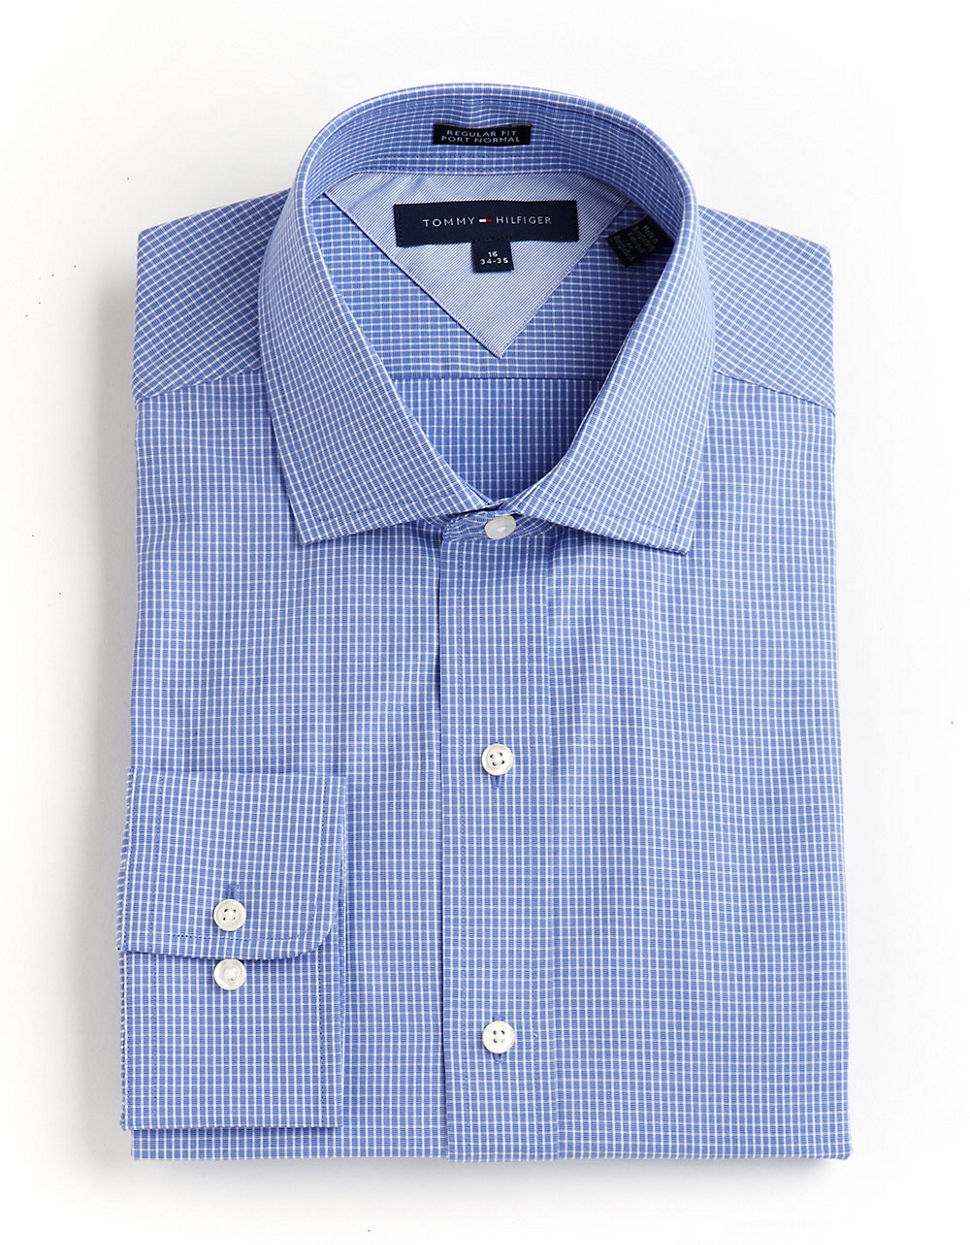 Tommy hilfiger Tommy Hilfiger Ls Regular Fit Dress Shirt blue 145  32/33